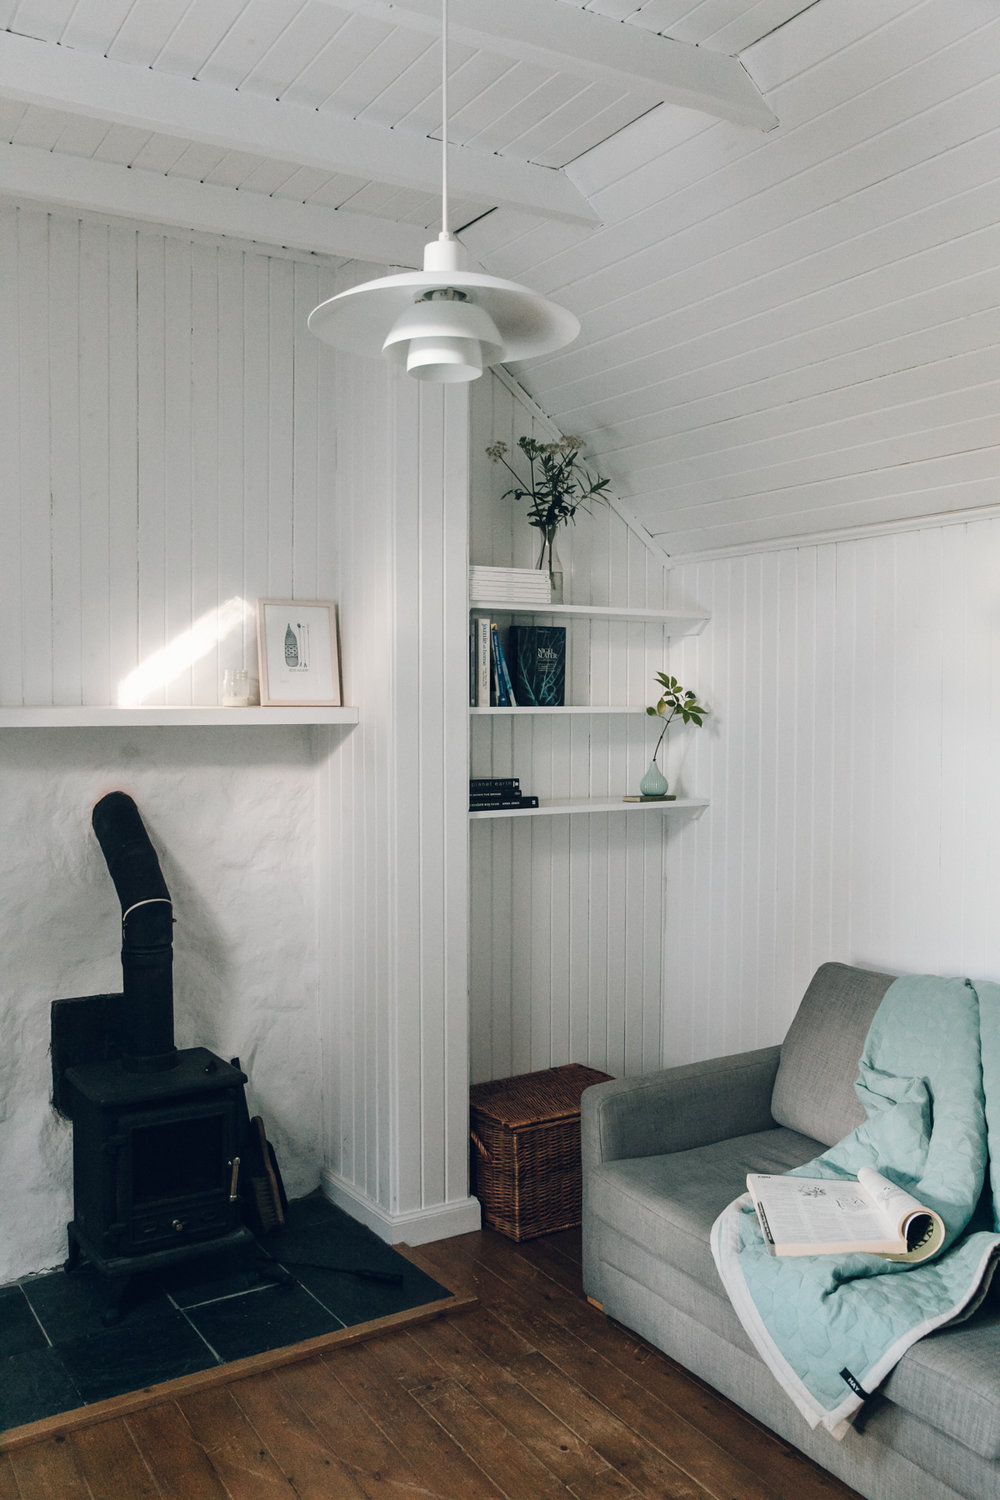 The Scandinavian-inspired living room inside The Crofter's House on the Isle of Skye.